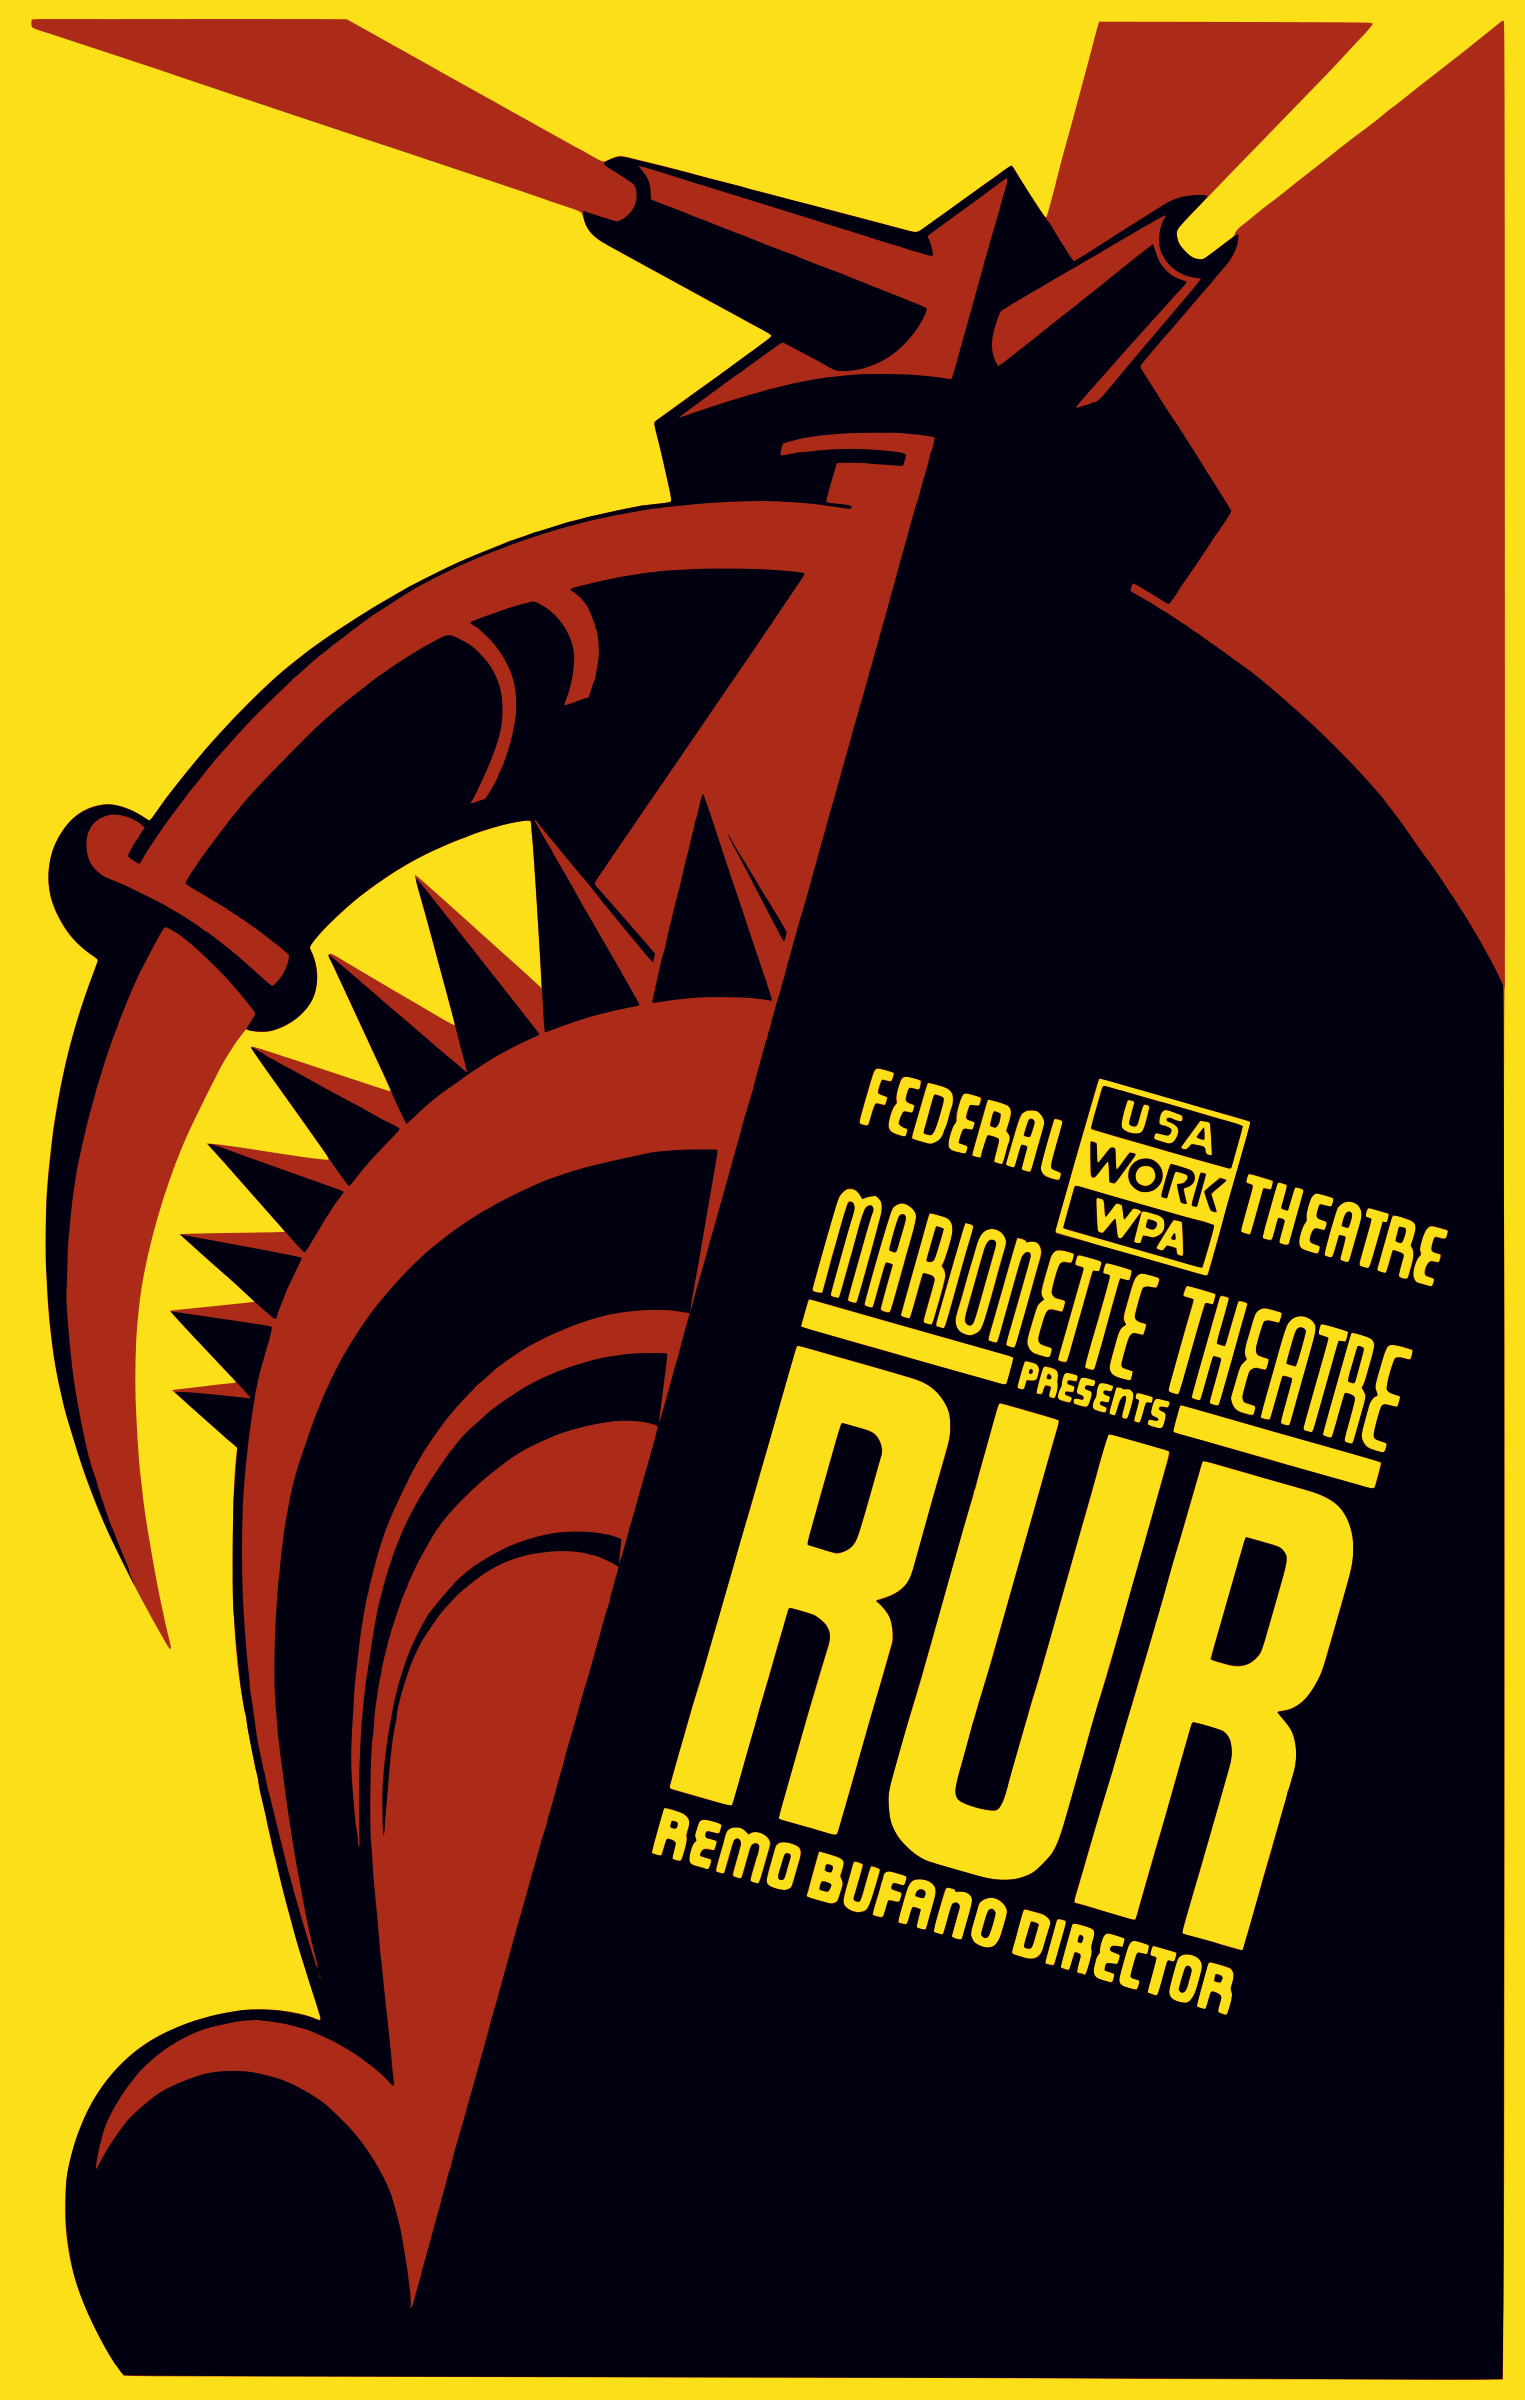 Federal Theatre - Marionette Theatre presents RUR by liftarn